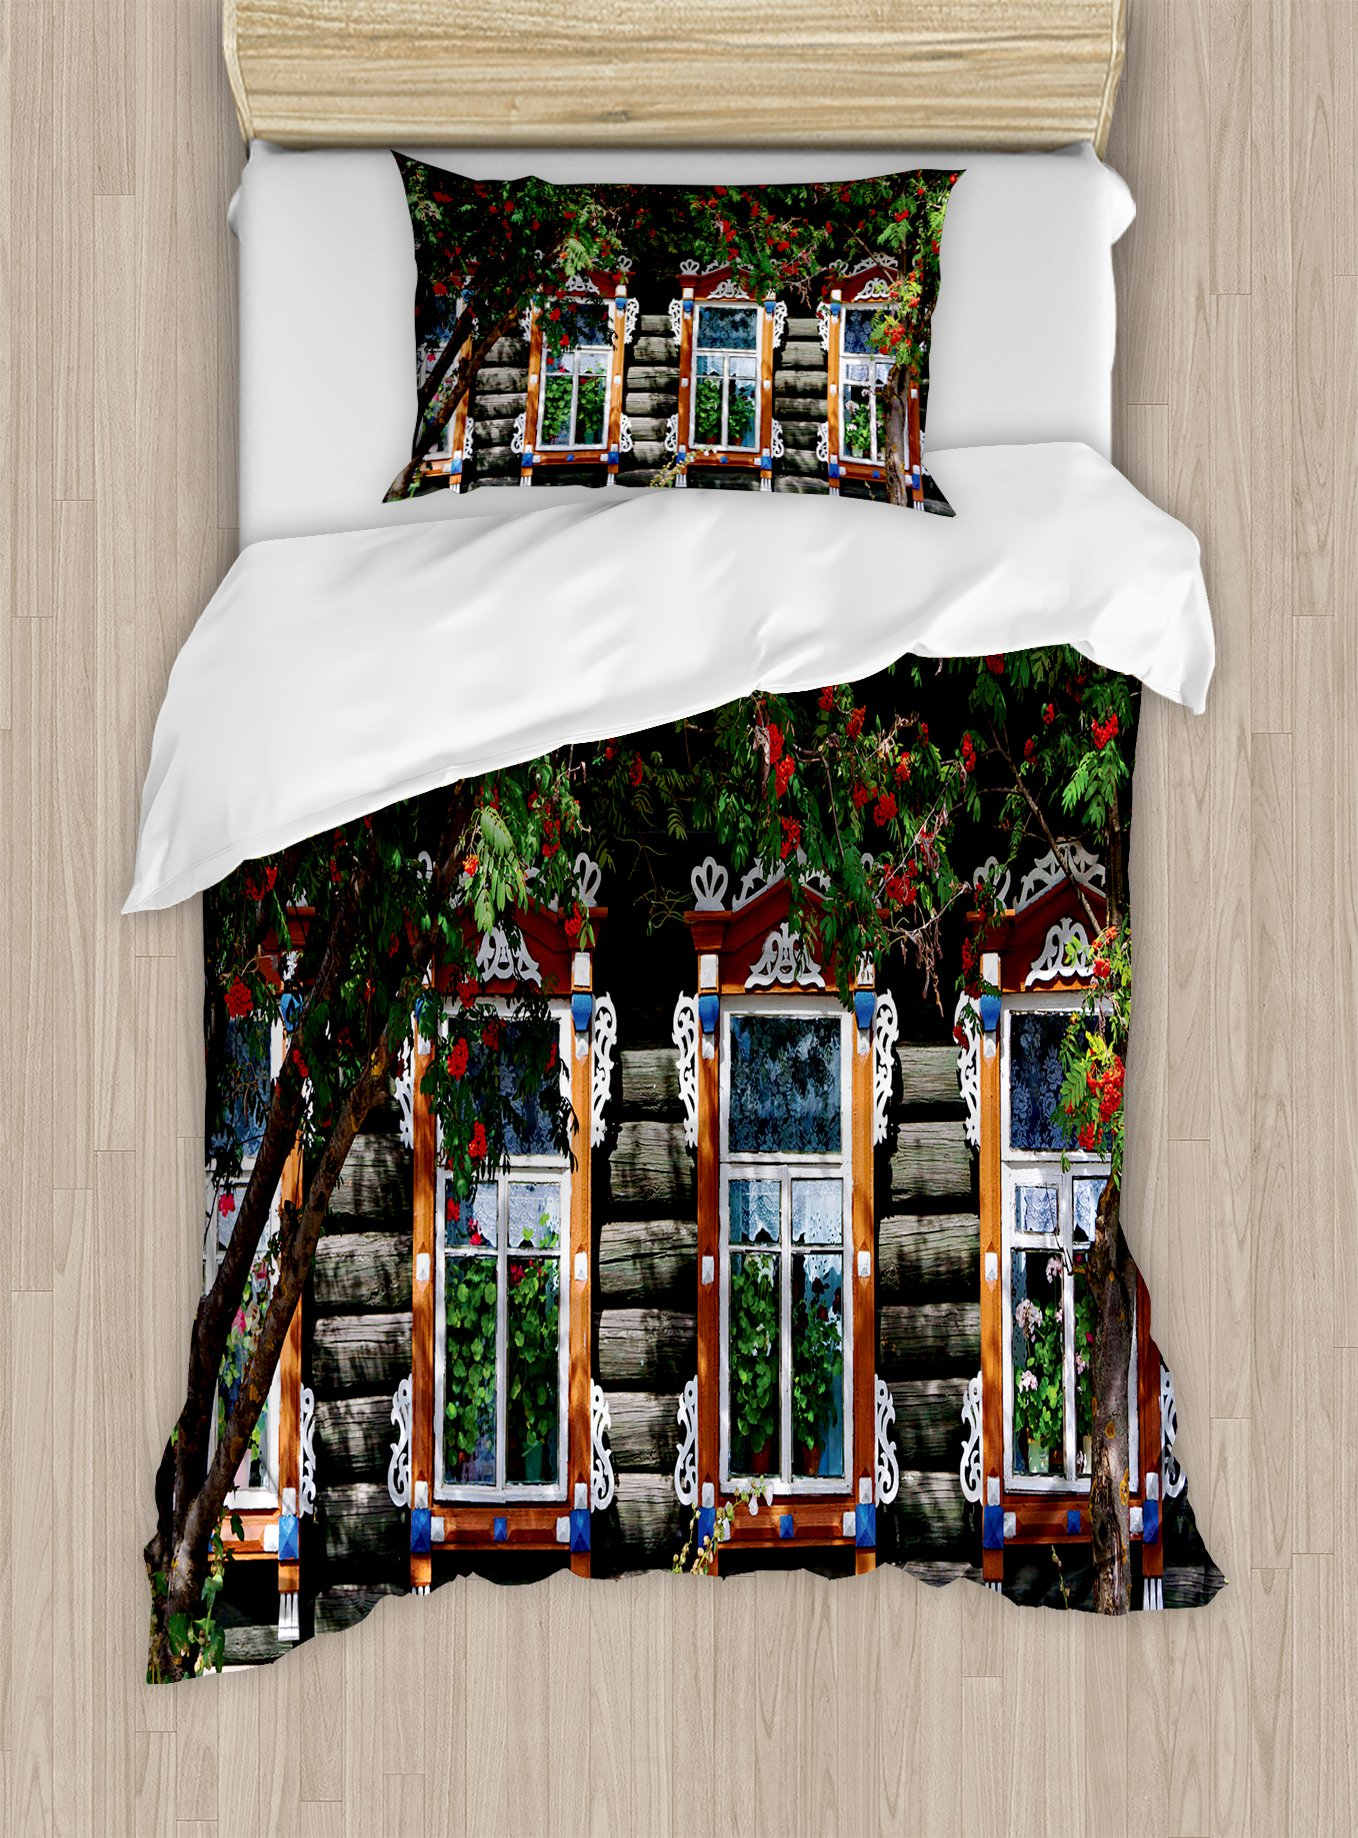 Ambesonne Shutters Duvet Cover Set Twin Size, Wooden House with Shutter at Windows Fence Flower Trees Blooms Dream Art, Decorative 2 Piece Bedding Set with 1 Pillow Sham, Red Green Brown